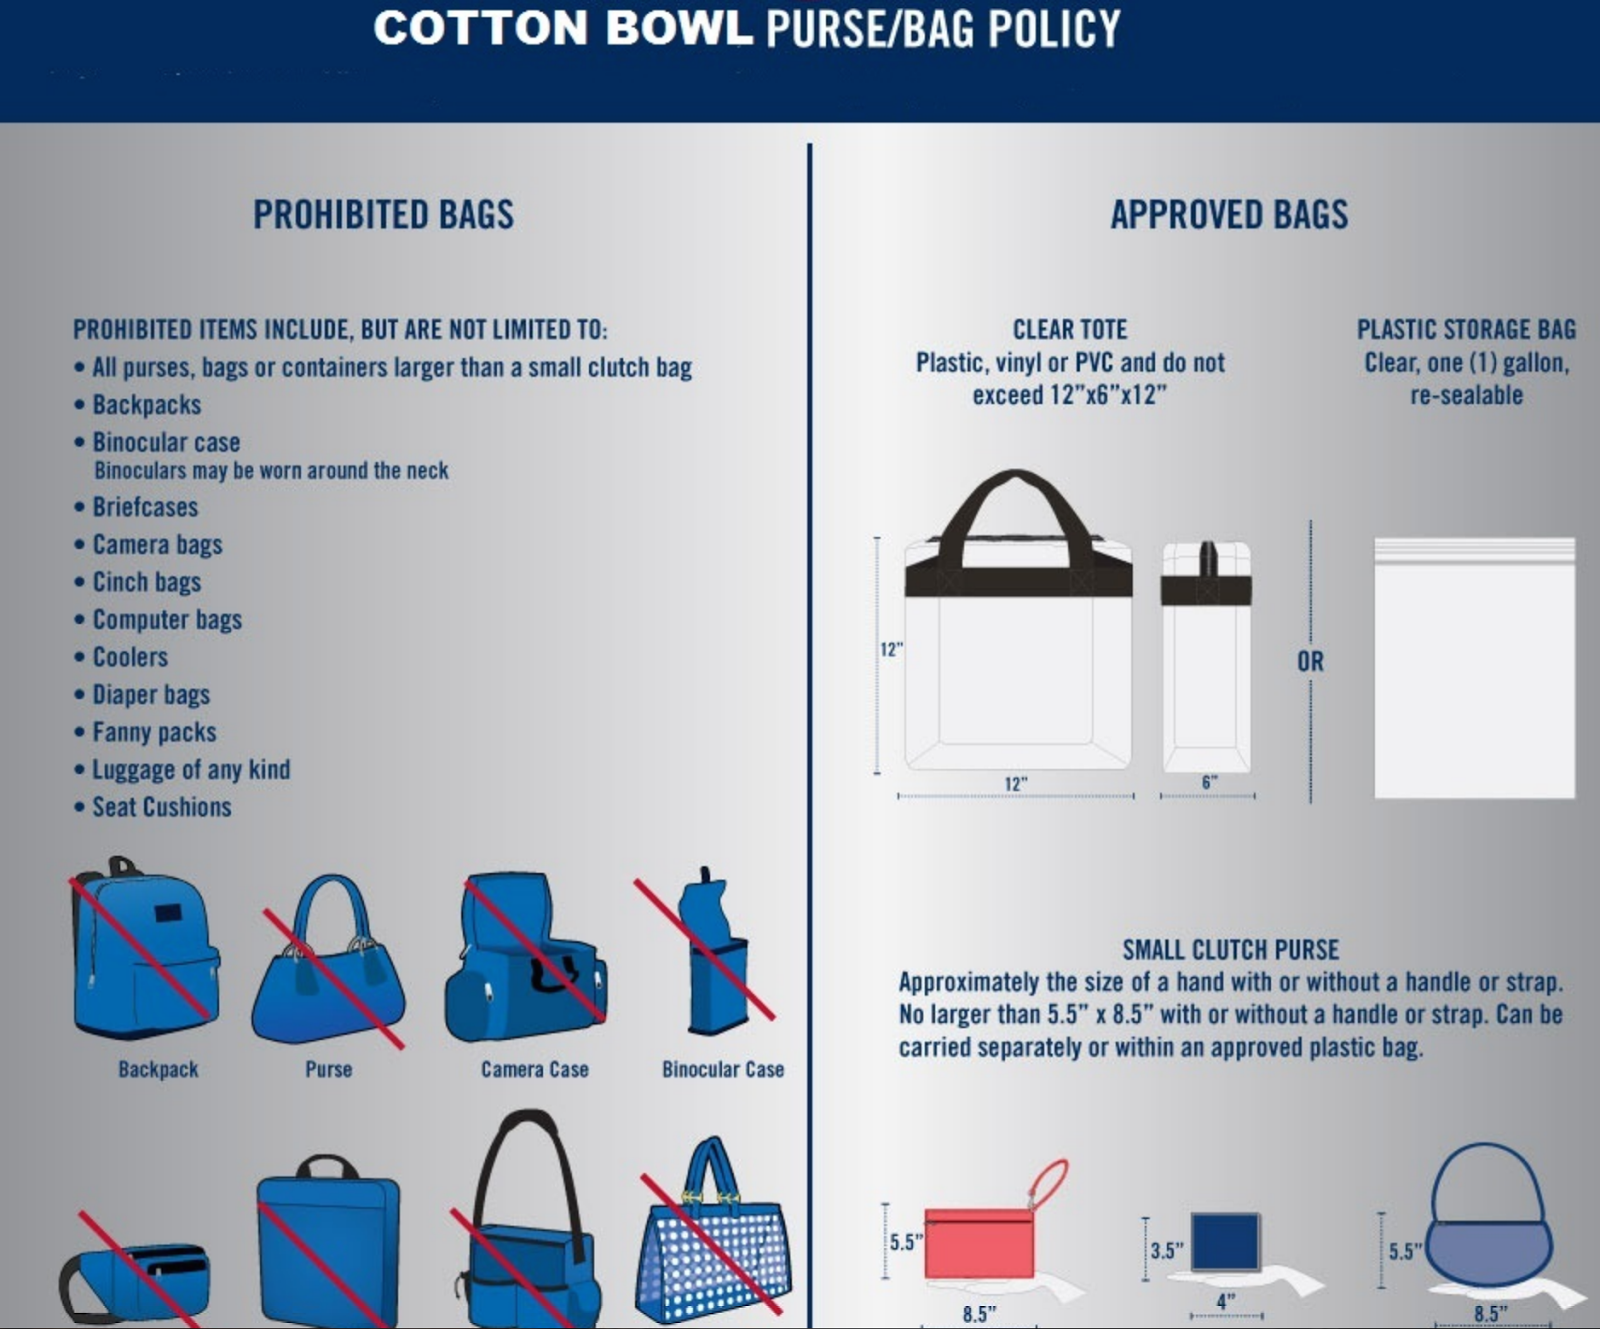 cotton bowl purse policy, cotton bowl bag policy, fair park purse policy